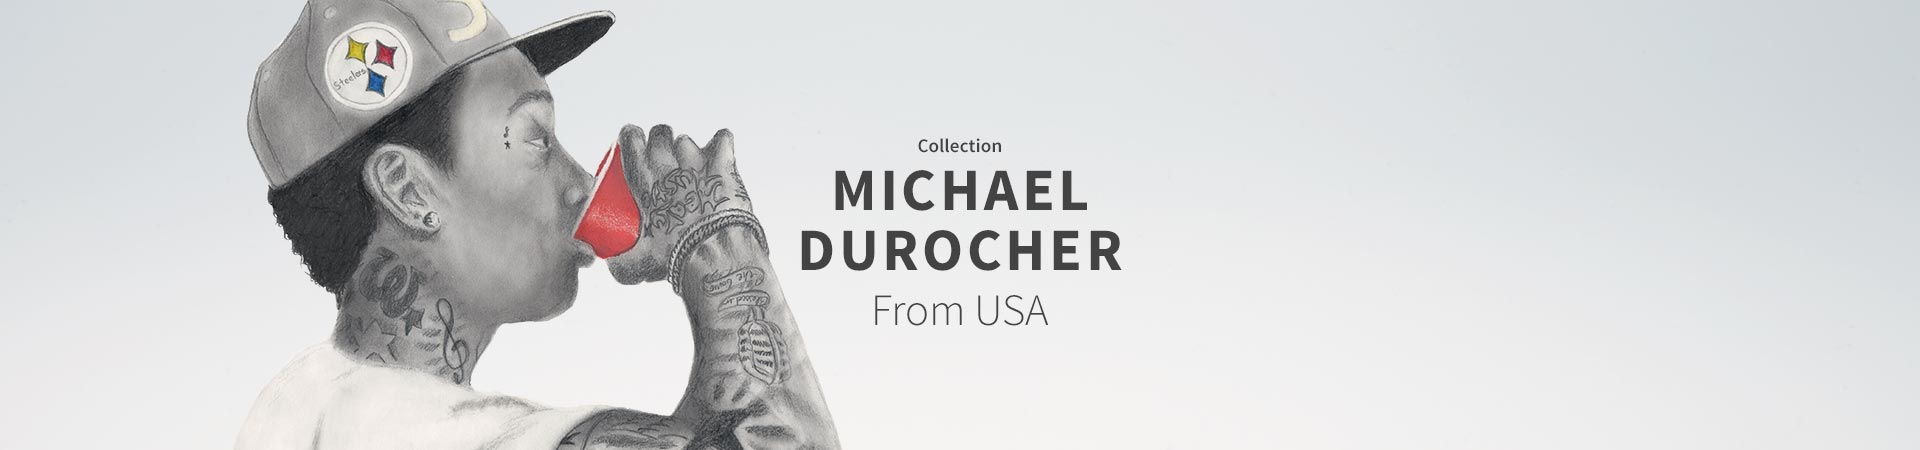 Collection Michael Durocher